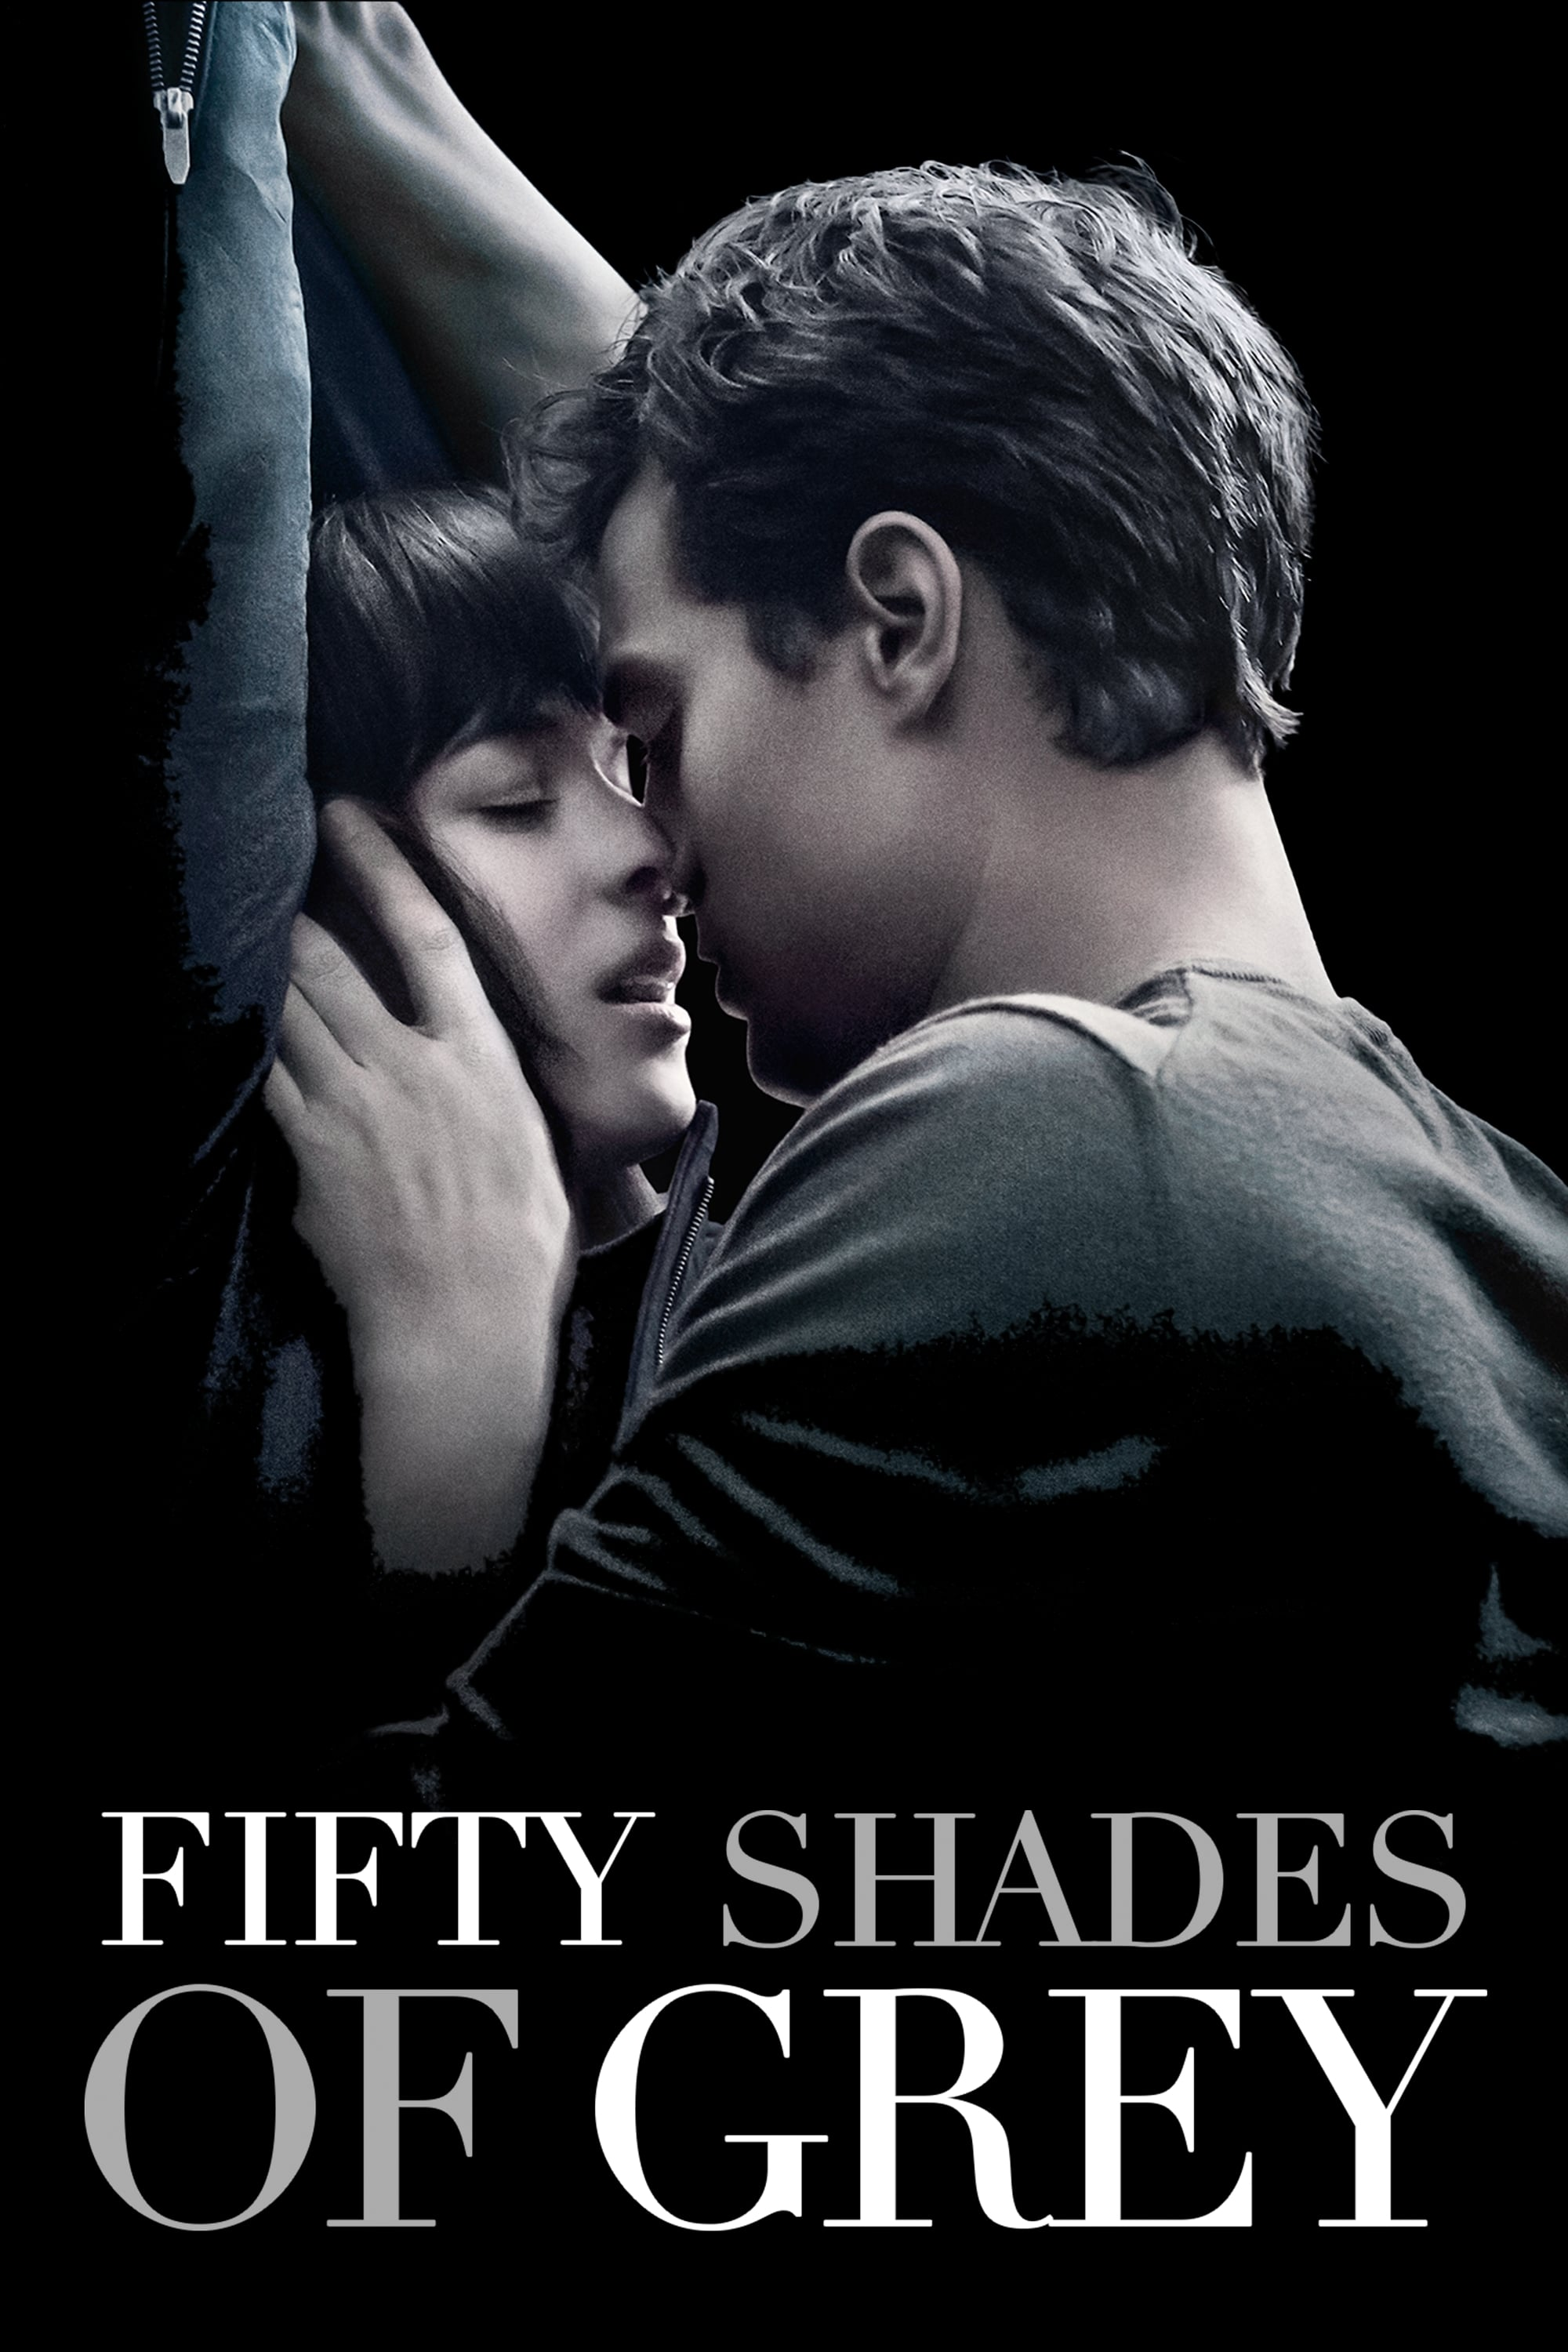 Fifty Shades Of Grey 2 Film